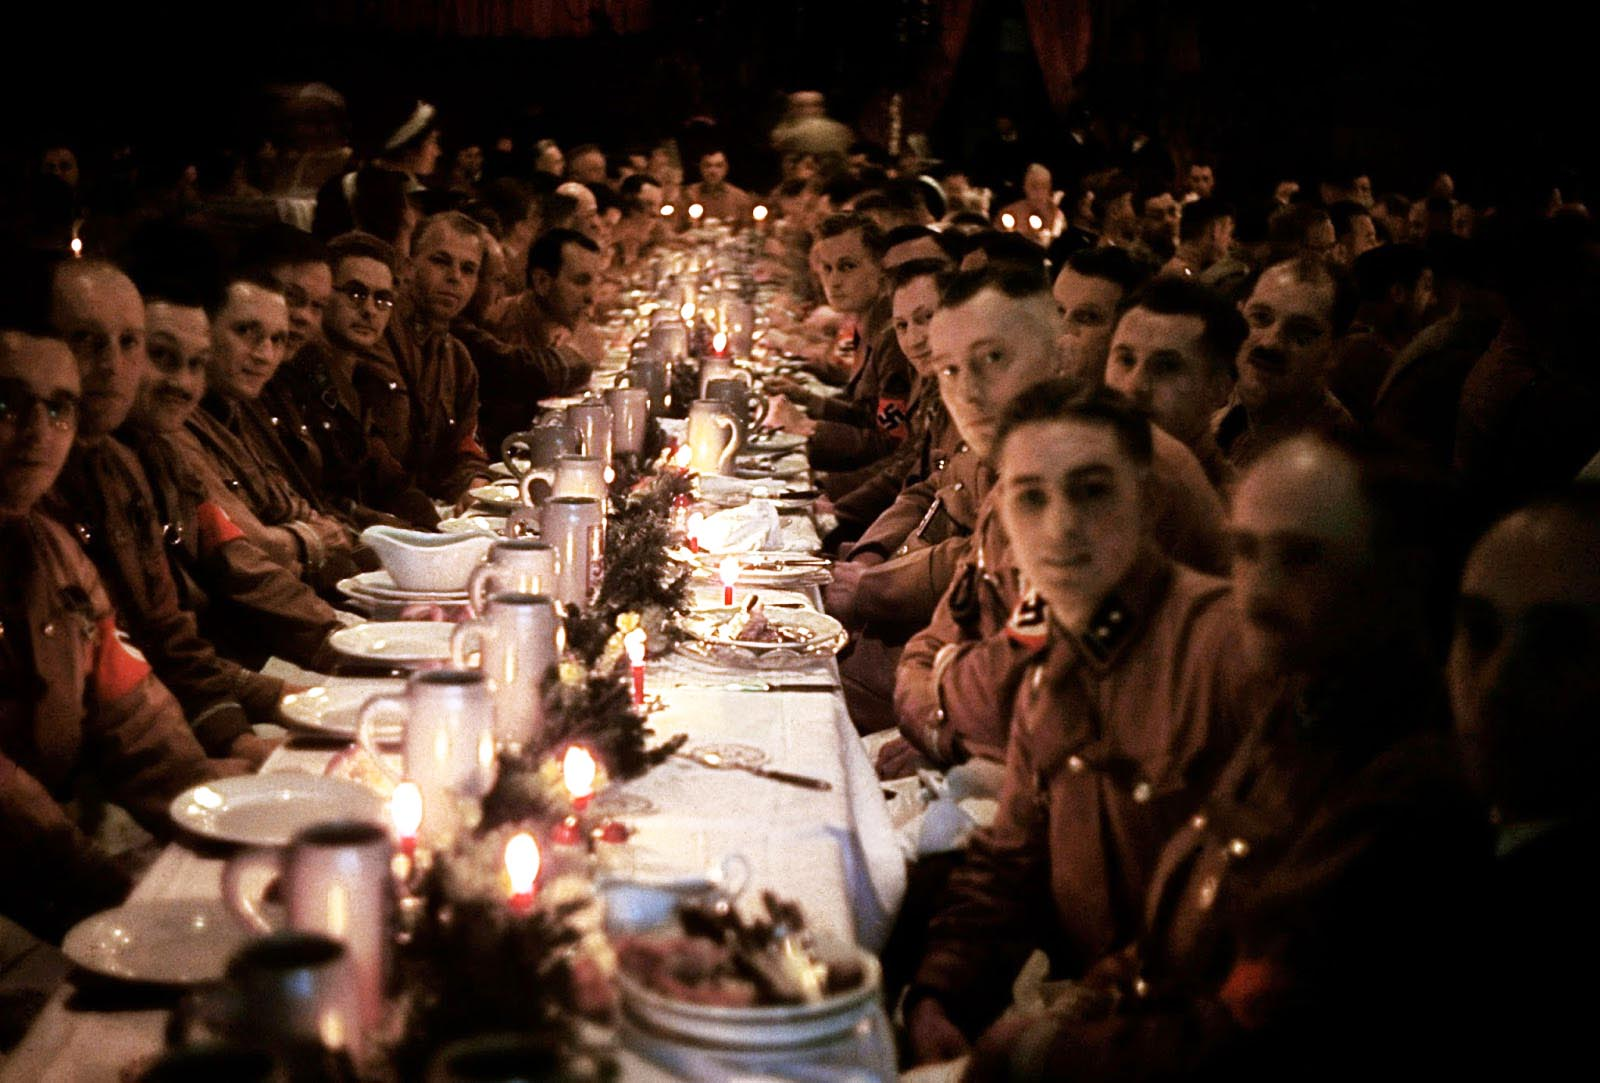 Officers and cadets begin their dinner.